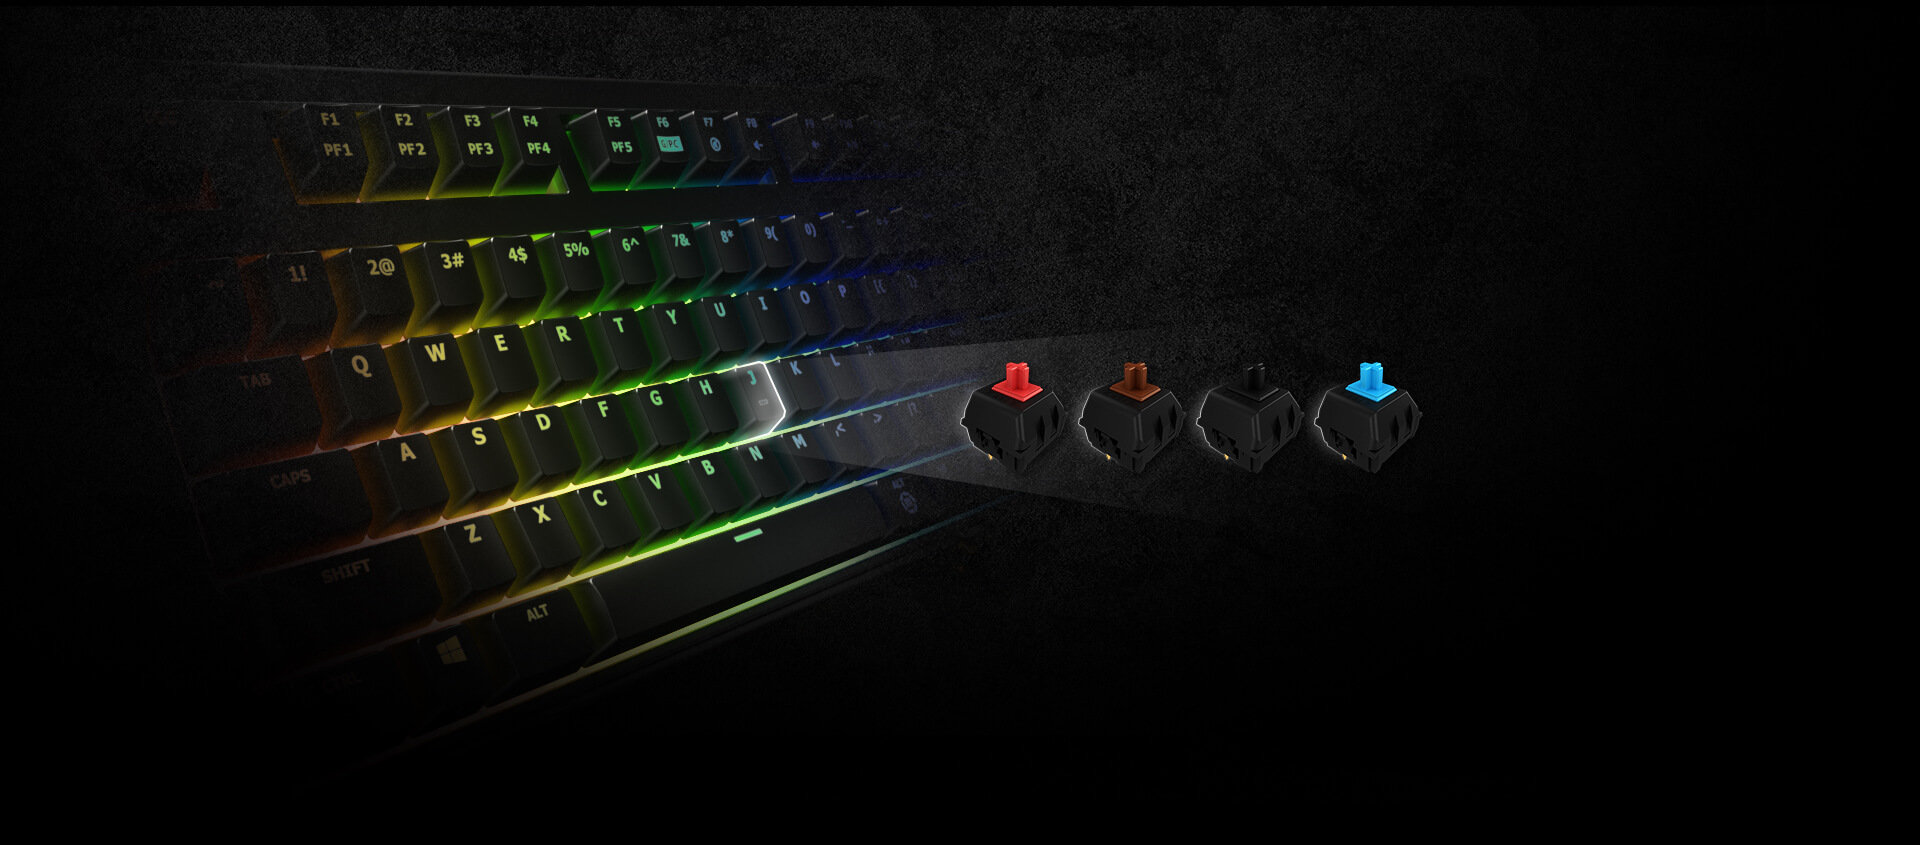 https://dlcdnimgs.asus.com/websites/global/products/HOsRSP7kp5L2CCyG/img/rgb_key_switches.jpg